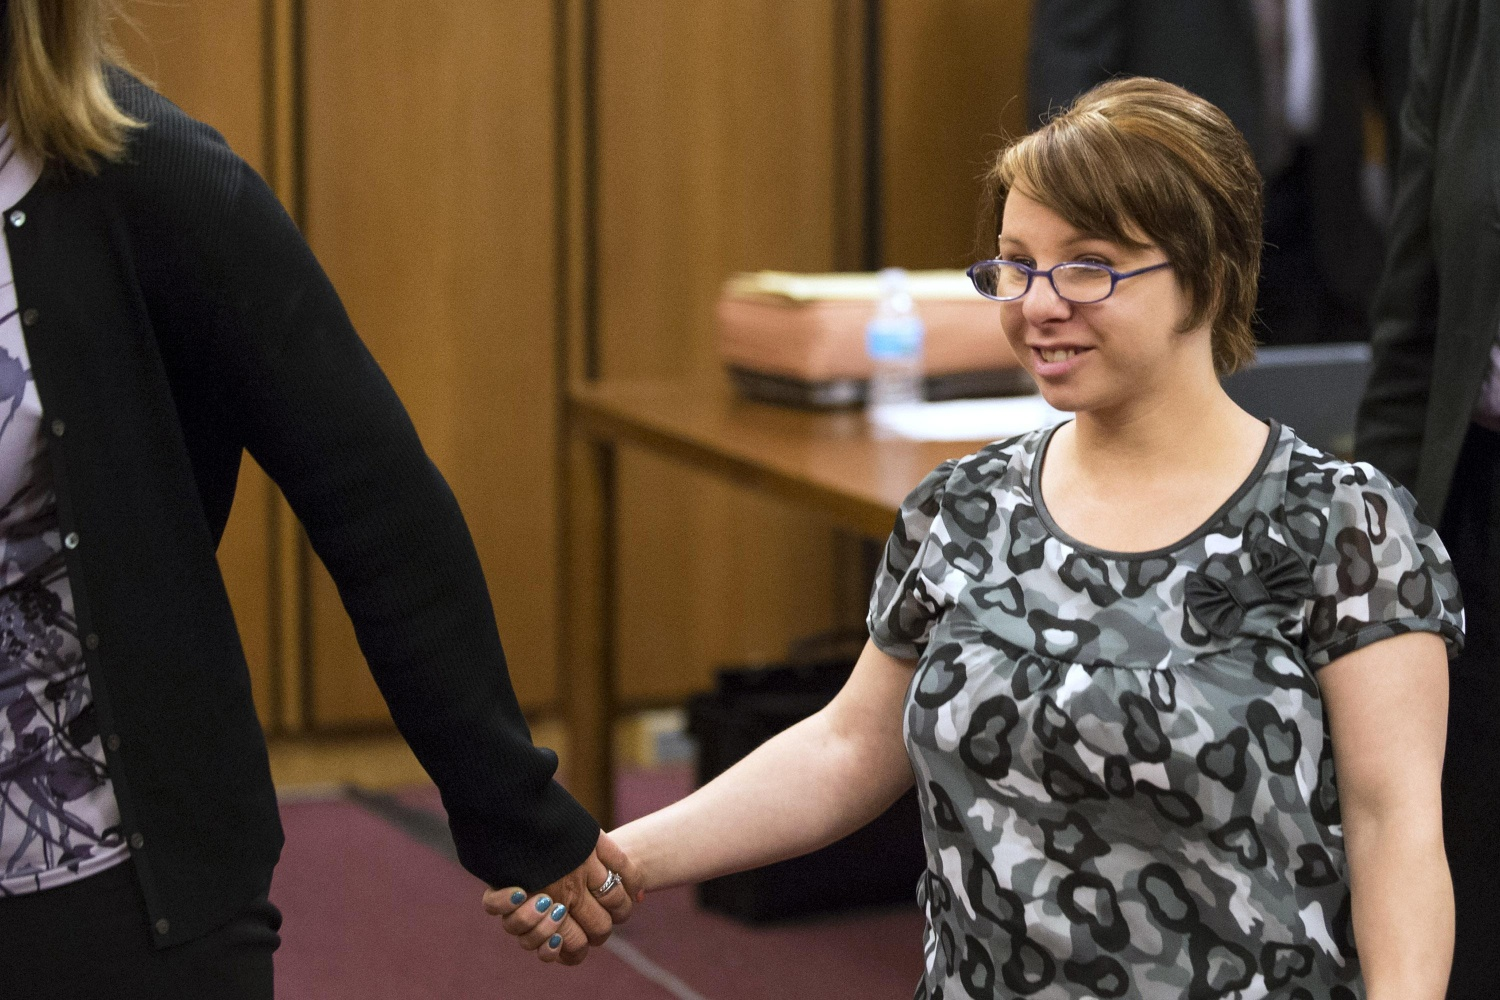 Woman Held Captive For 11 Years Reveals She Is Now Happily Married